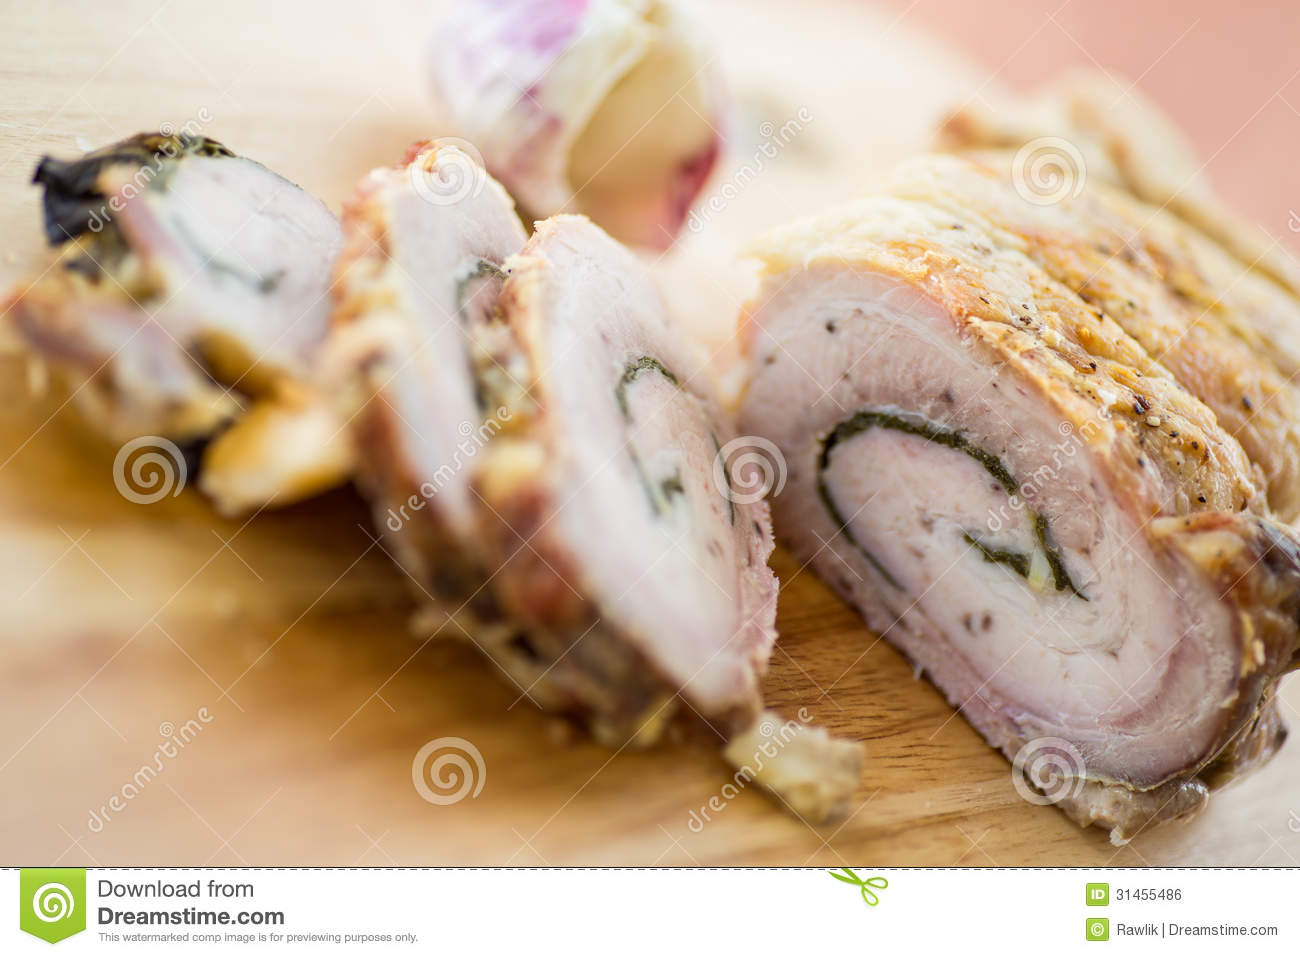 Meat Loaf Baked With Scallions Royalty Free Stock Image   Image